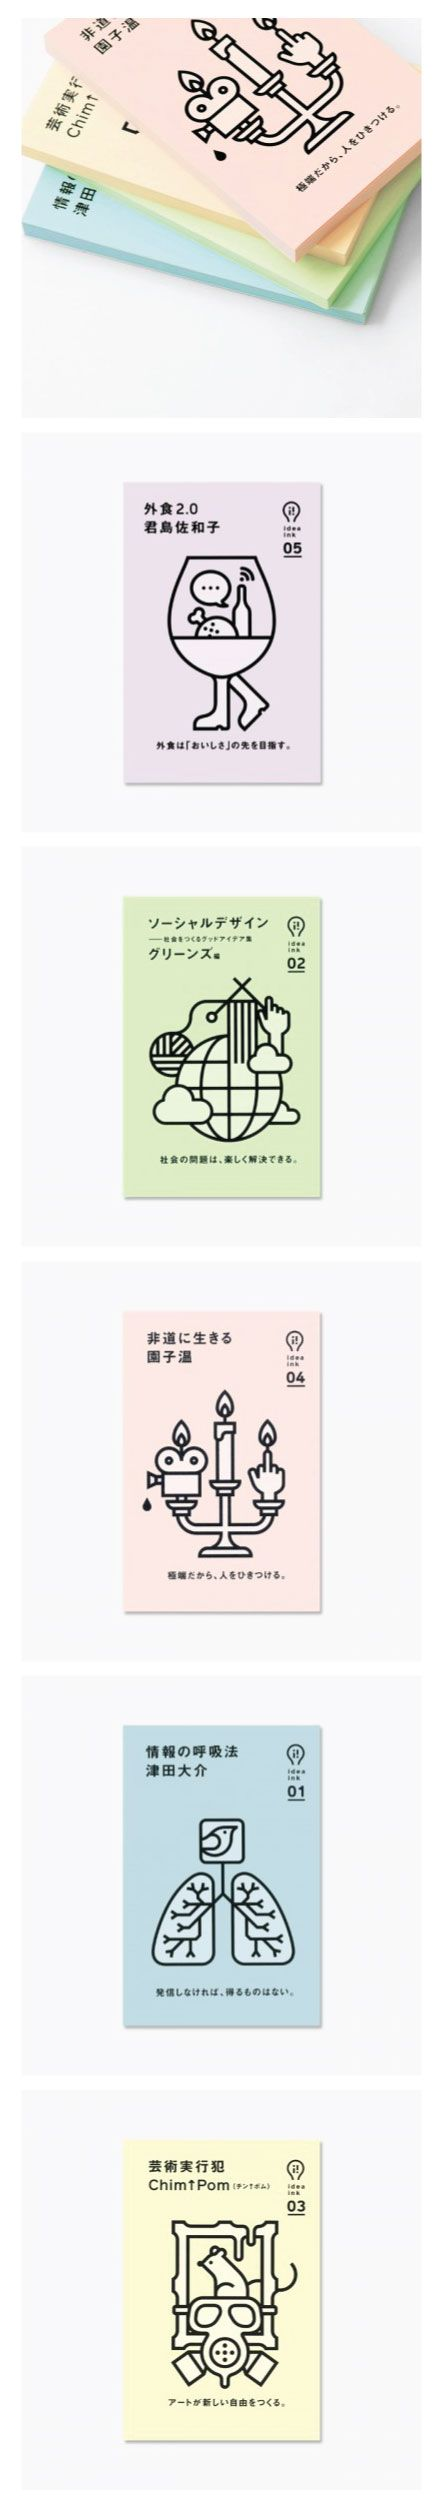 "idea ink is a series of Japanese books focusing on the theme of ""ideas of the future"", published by Asahi Press - design : Groovisions (Japon)"